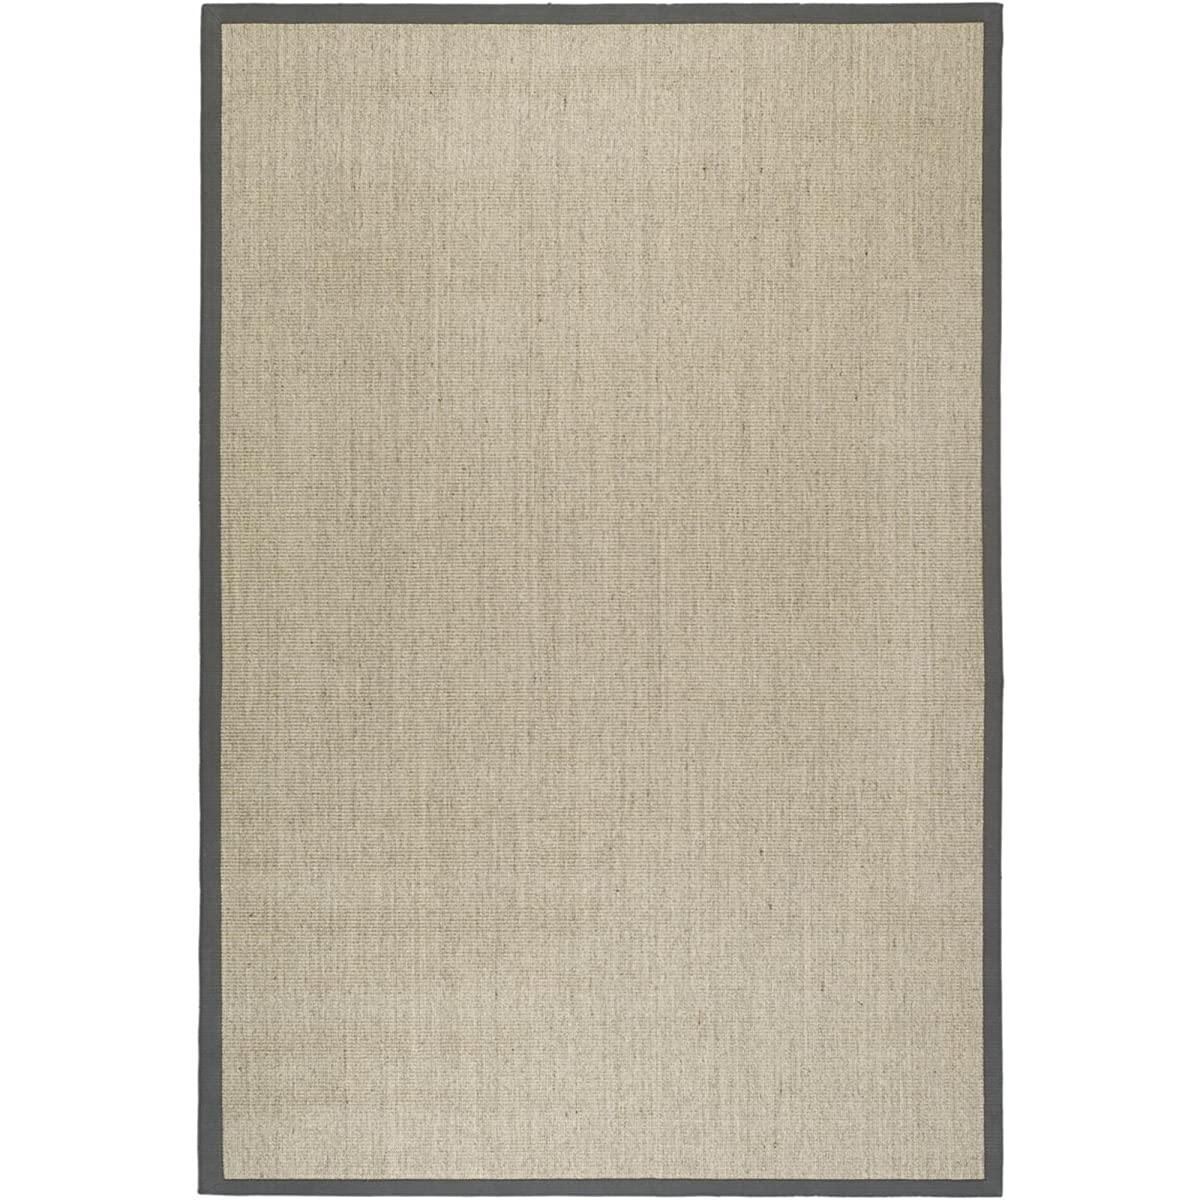 Safavieh Natural Fiber Collection NF441B Hand Woven Marble and Grey Sisal Area Rug (8 x 10)